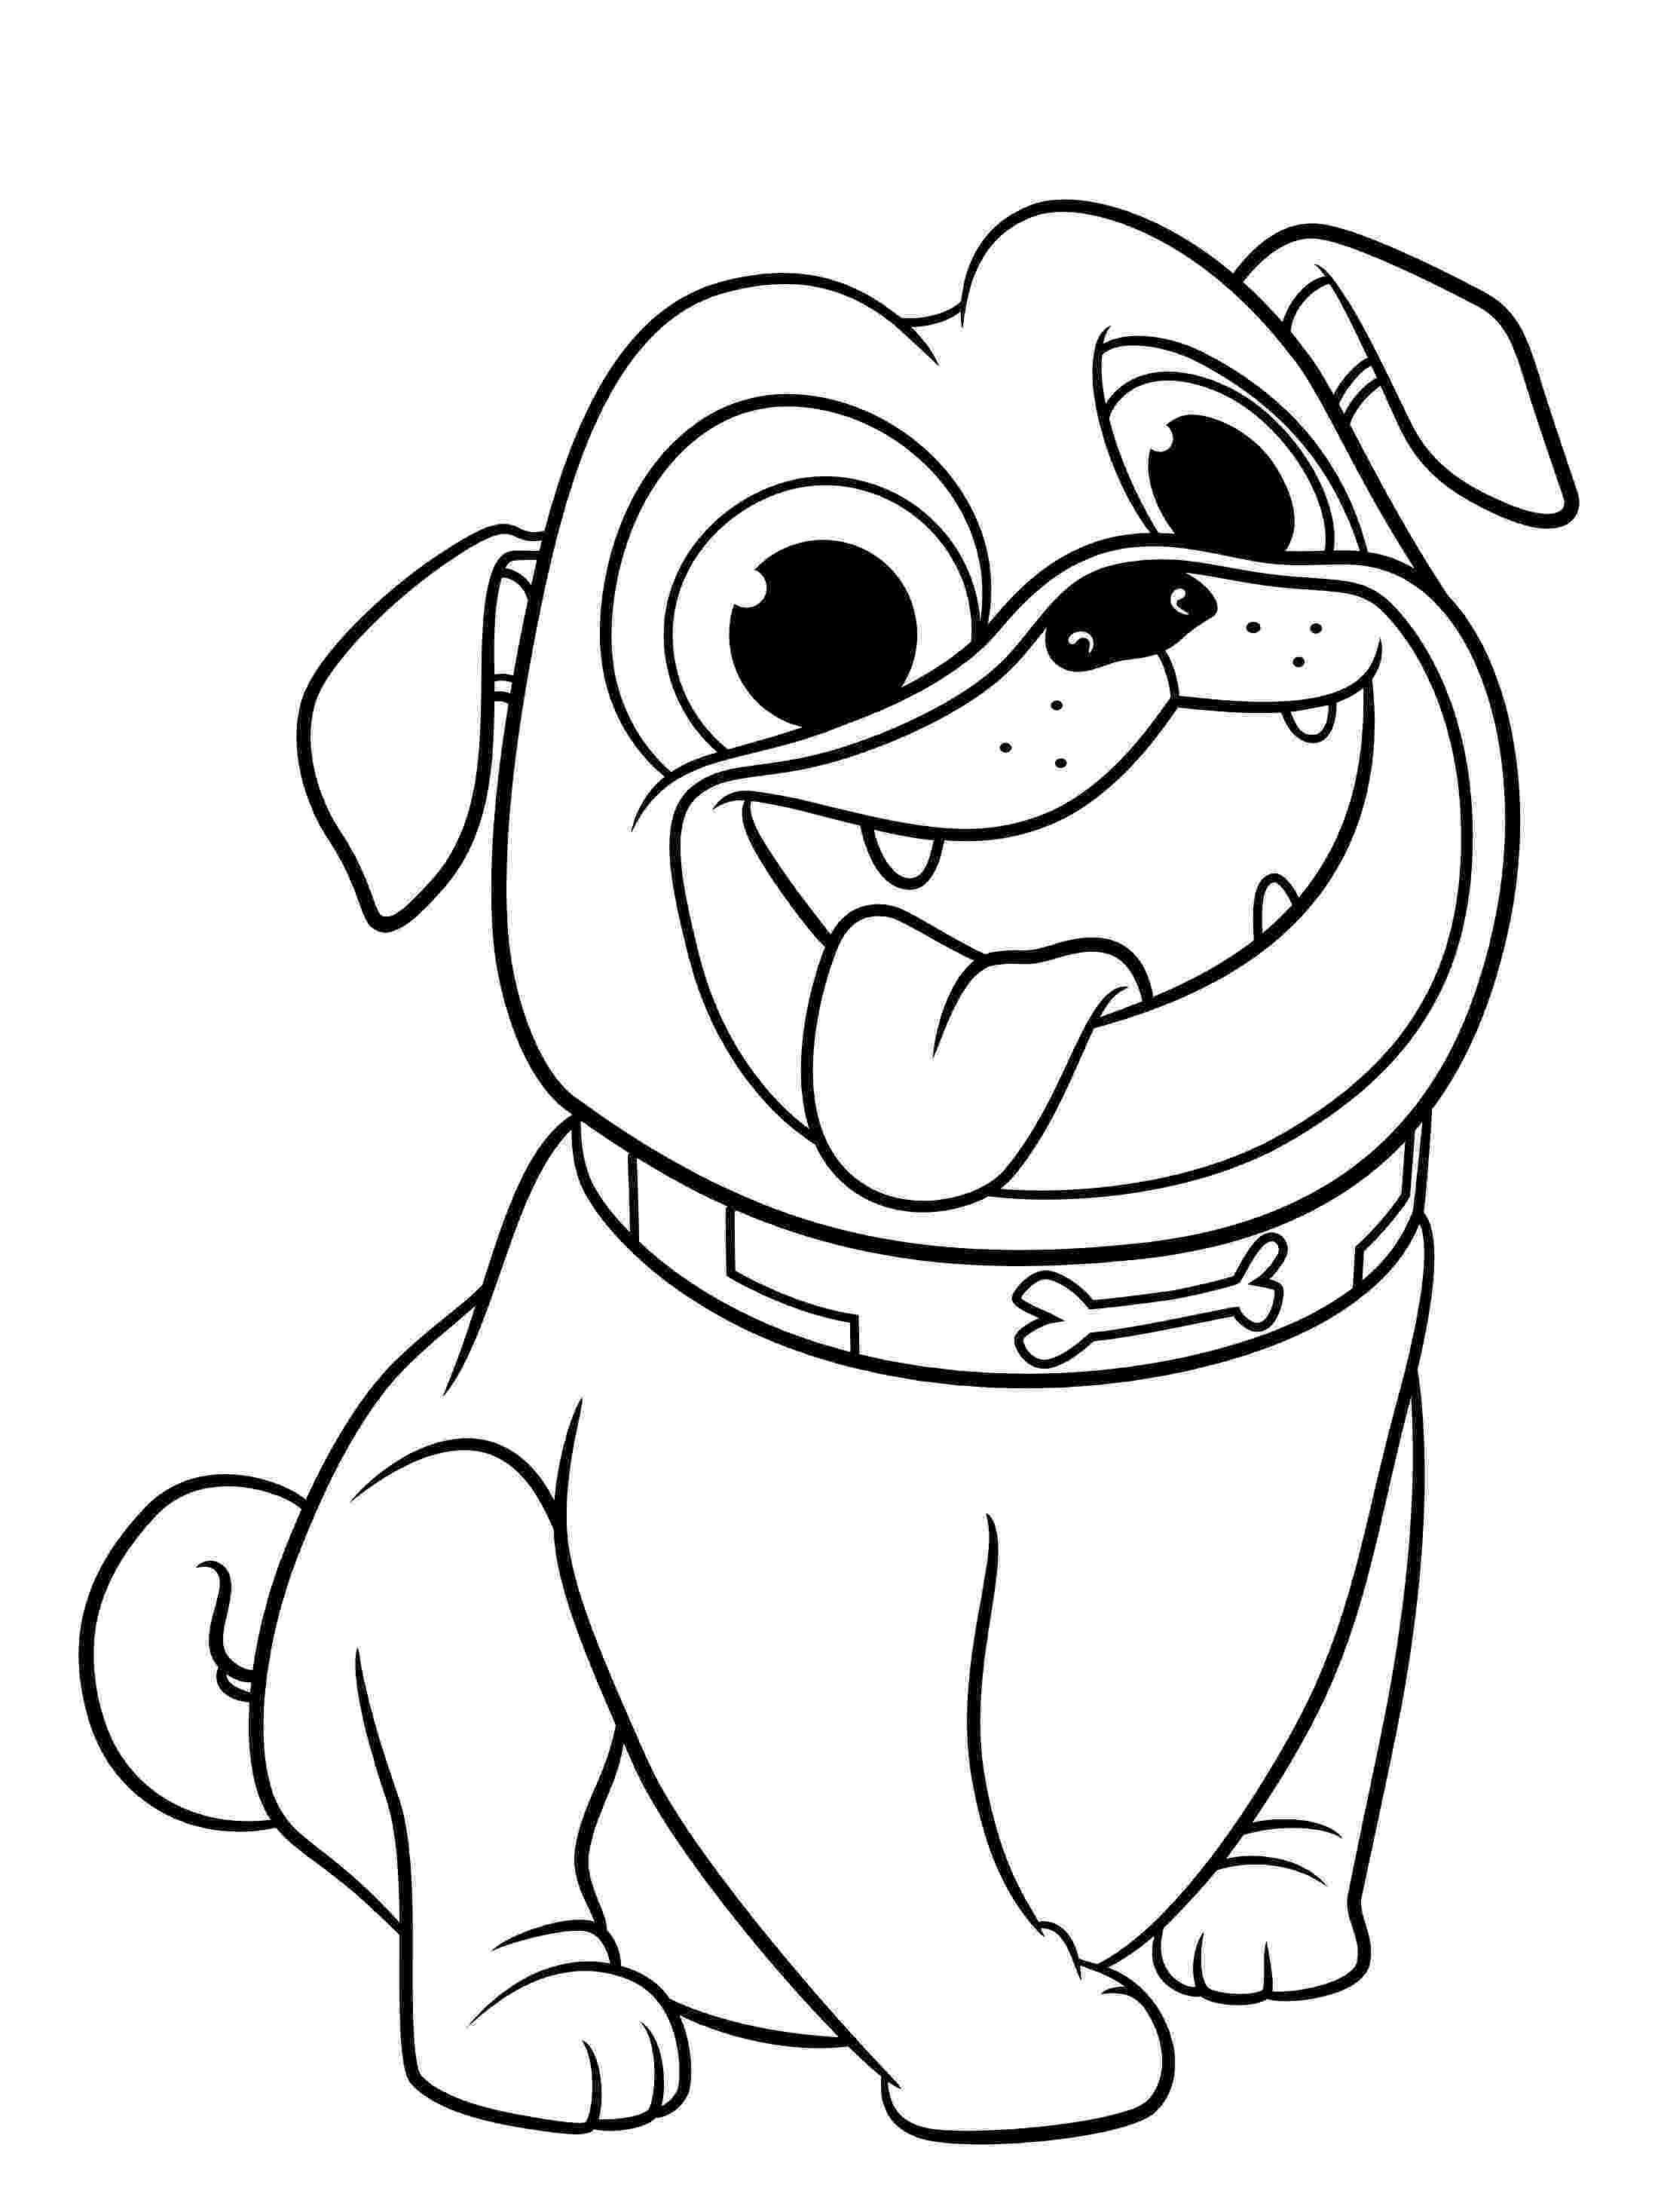 coloring sheets of dogs puppy dog pals coloring pages to download and print for free of dogs sheets coloring